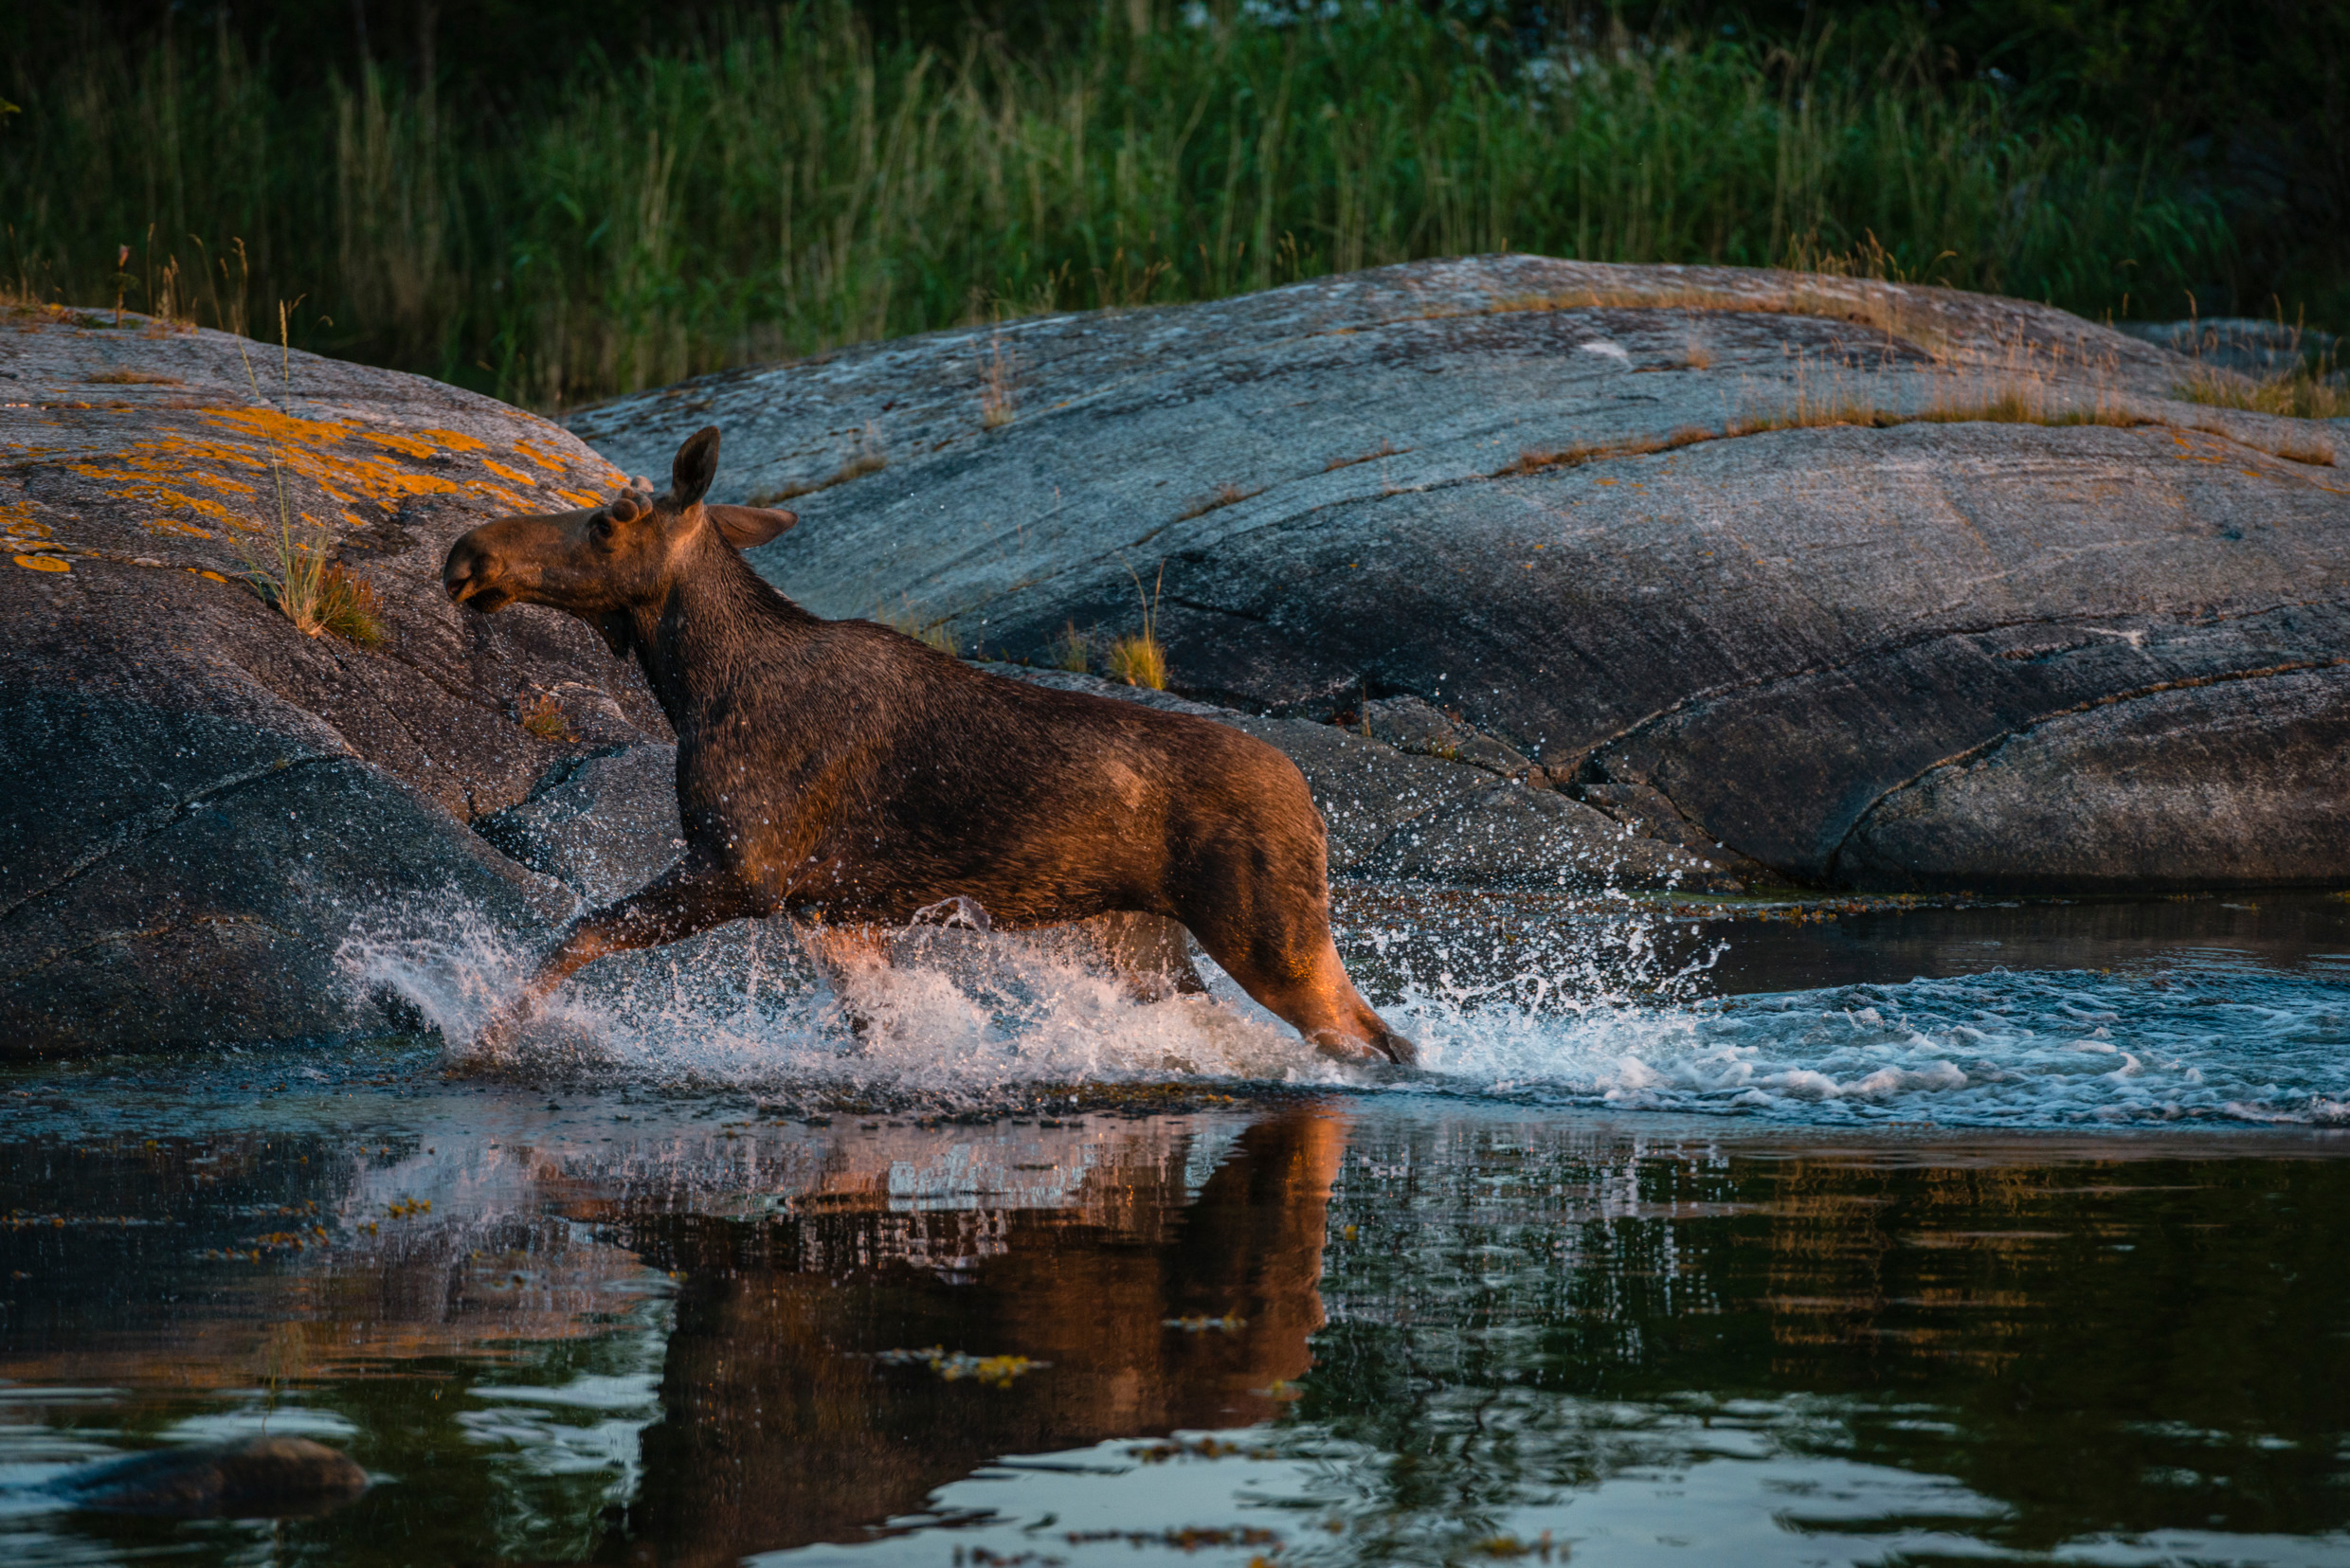 helena_wahlman-moose_in_water-4283.jpg